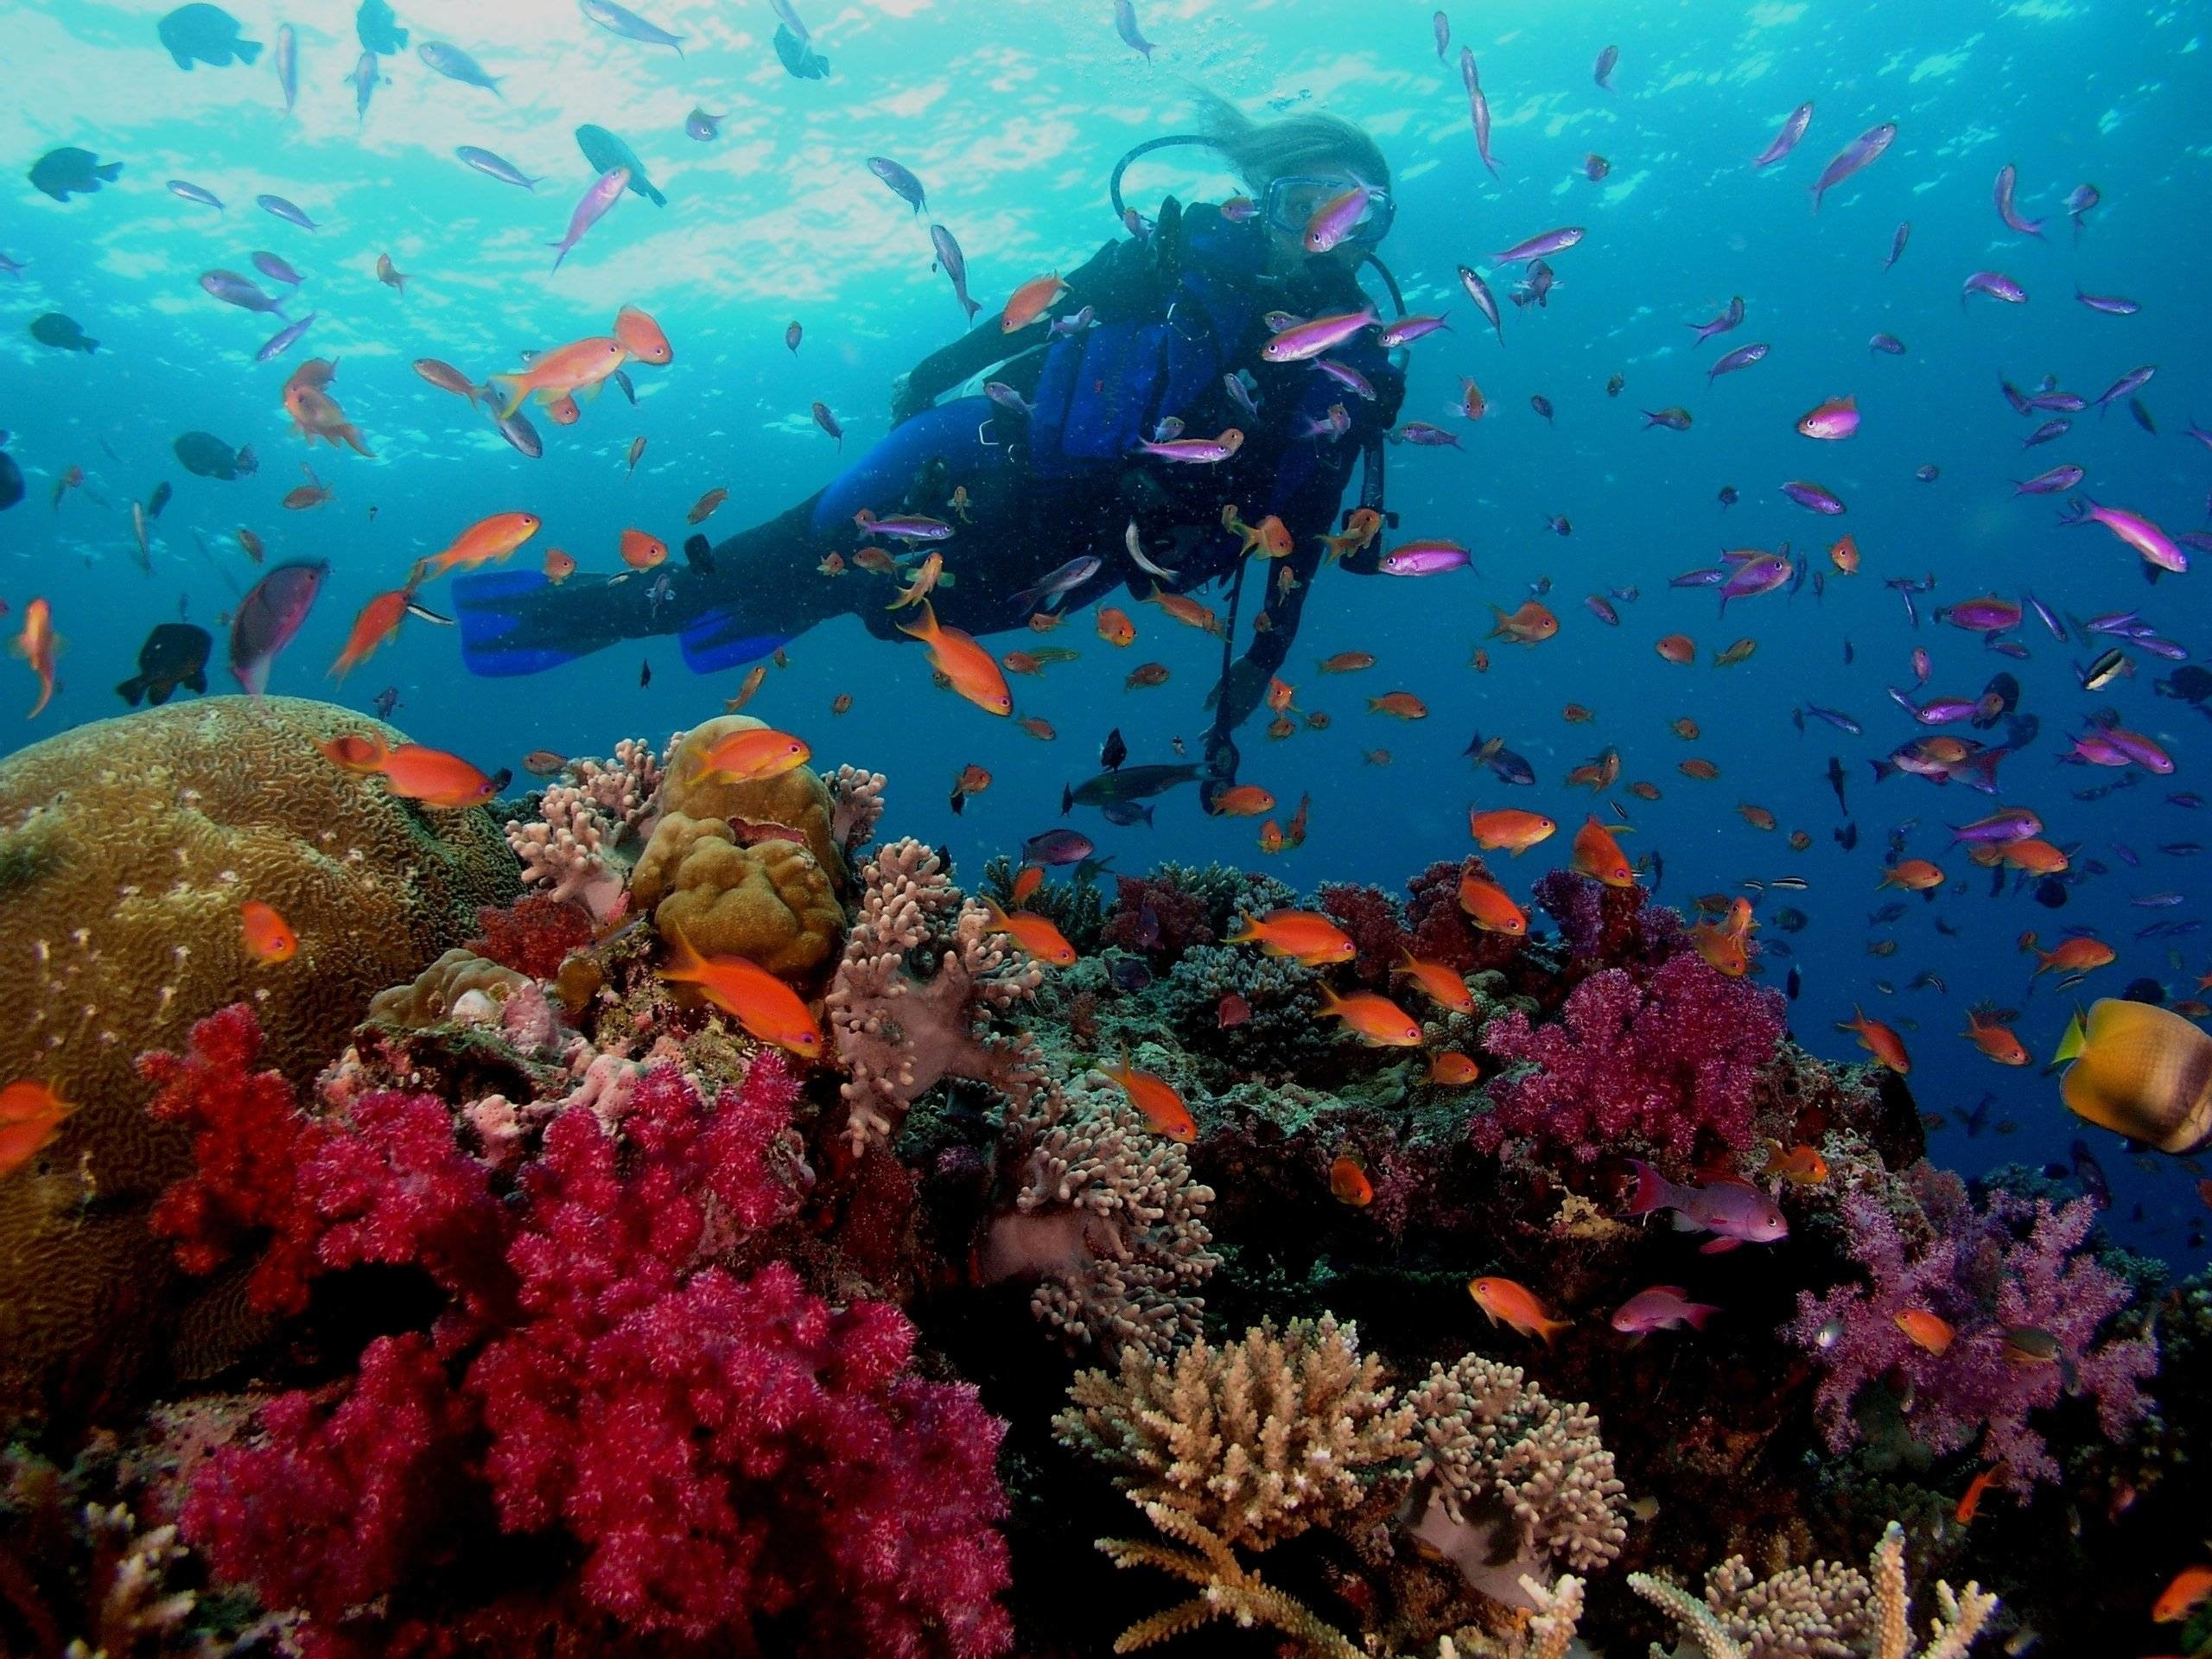 scuba diving wallpaper high resolution (51+ images)